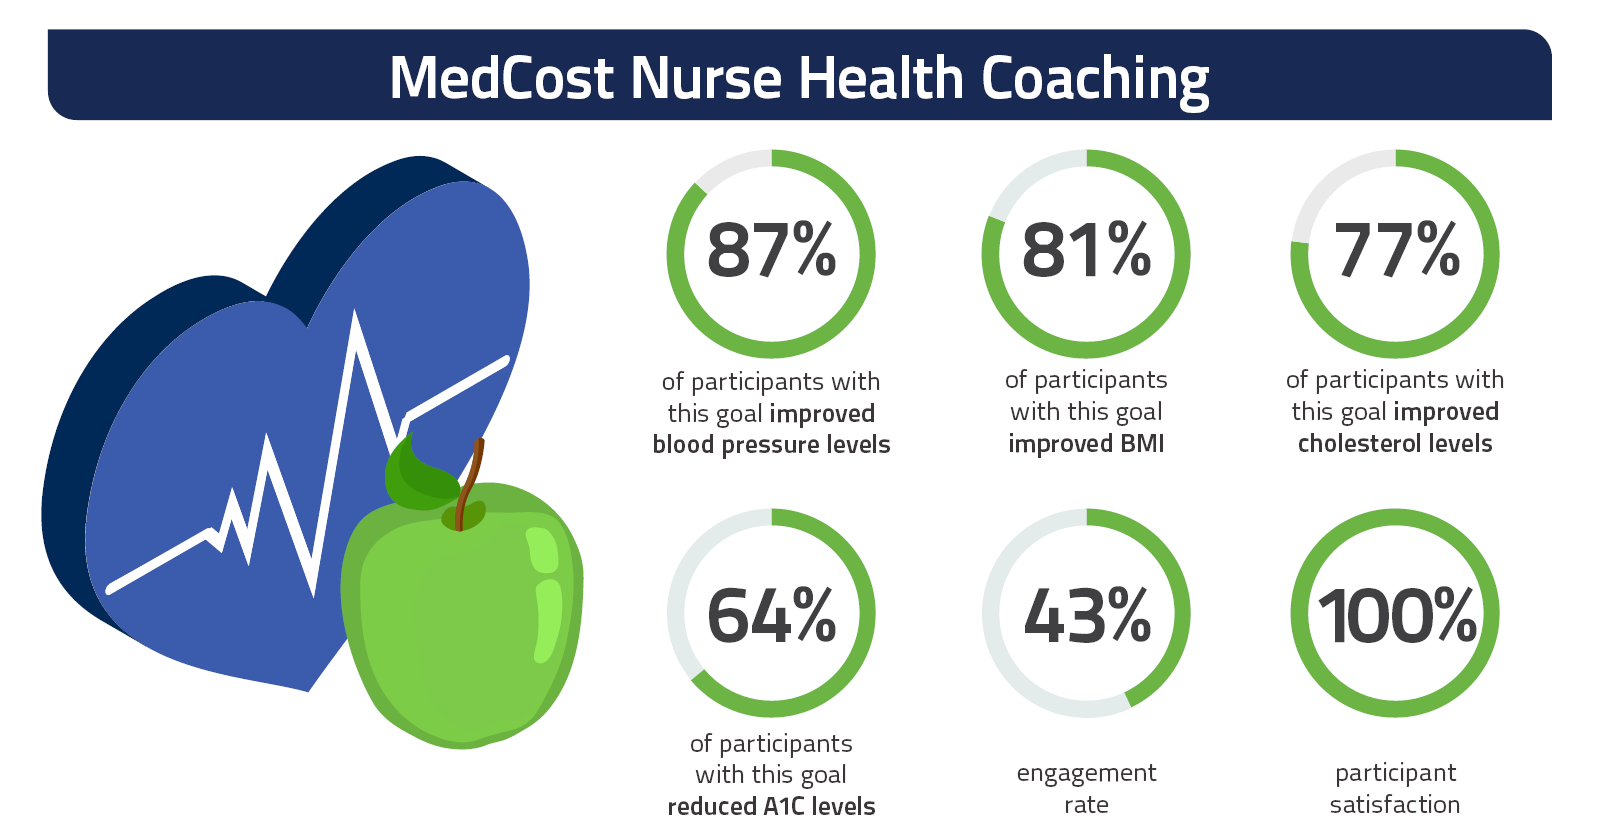 2019 Nurse Health Coaching Outcomes